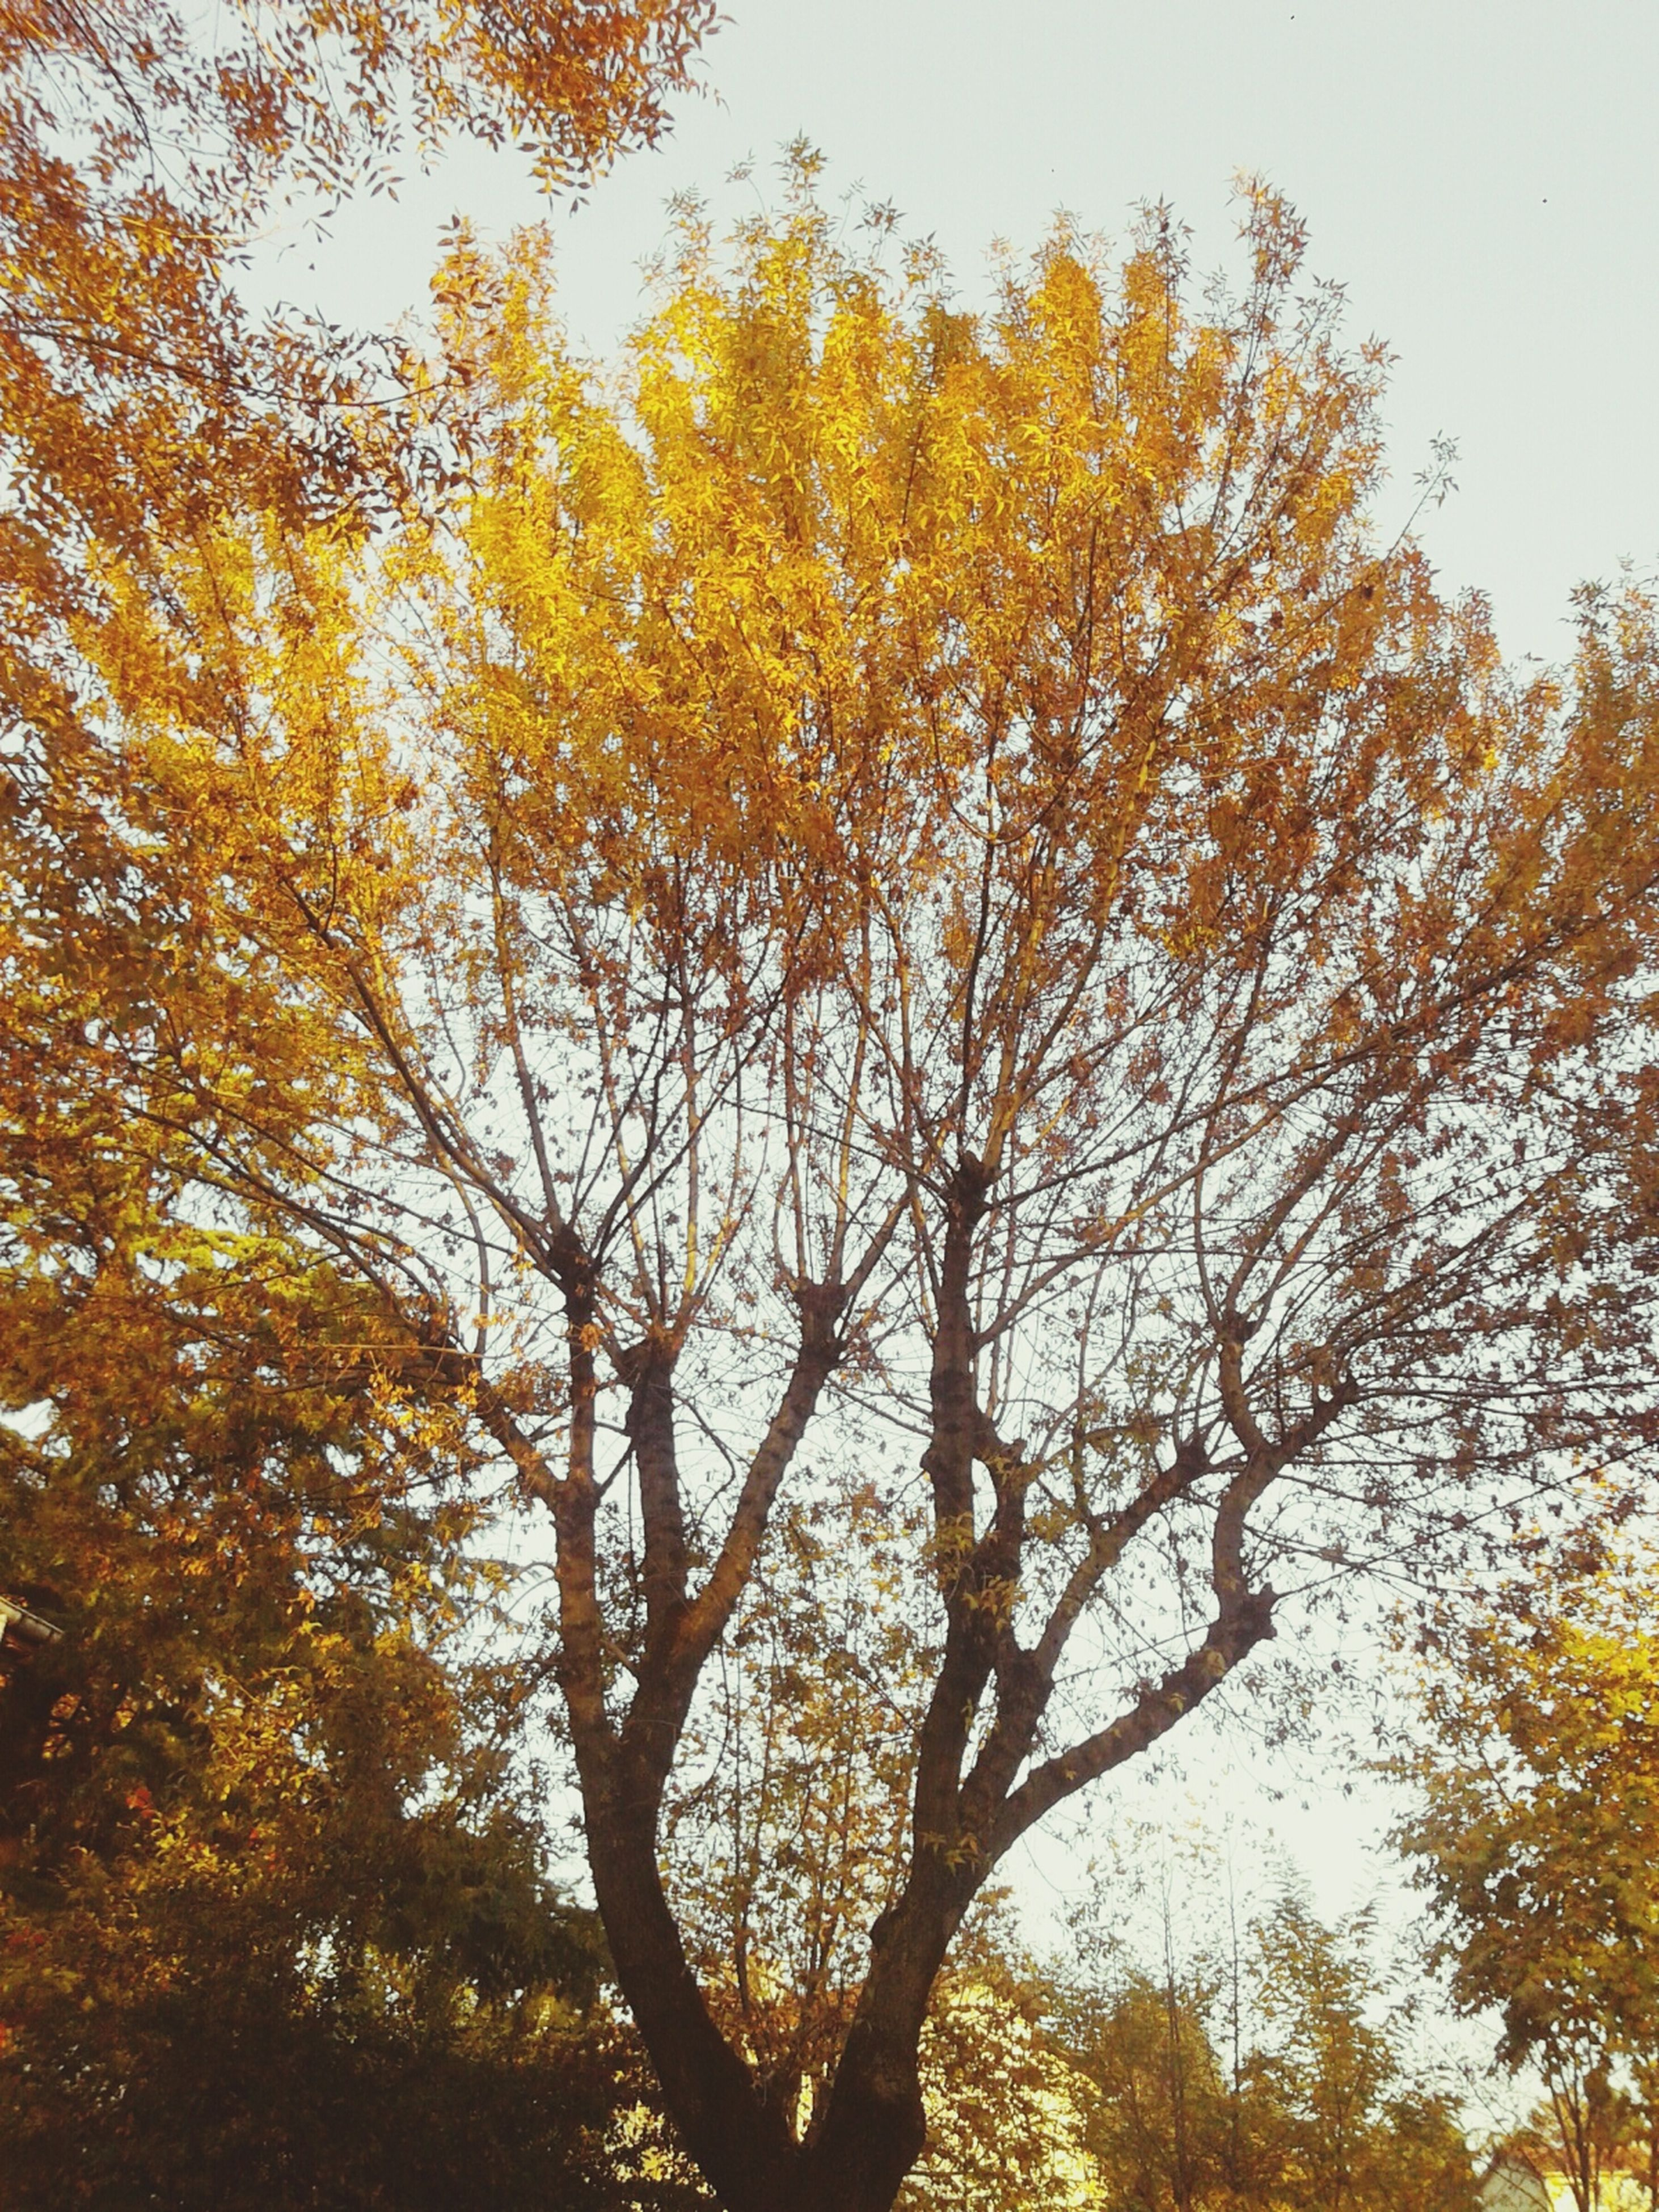 tree, low angle view, autumn, branch, change, growth, nature, beauty in nature, tranquility, yellow, season, clear sky, sky, scenics, day, leaf, orange color, outdoors, no people, tranquil scene